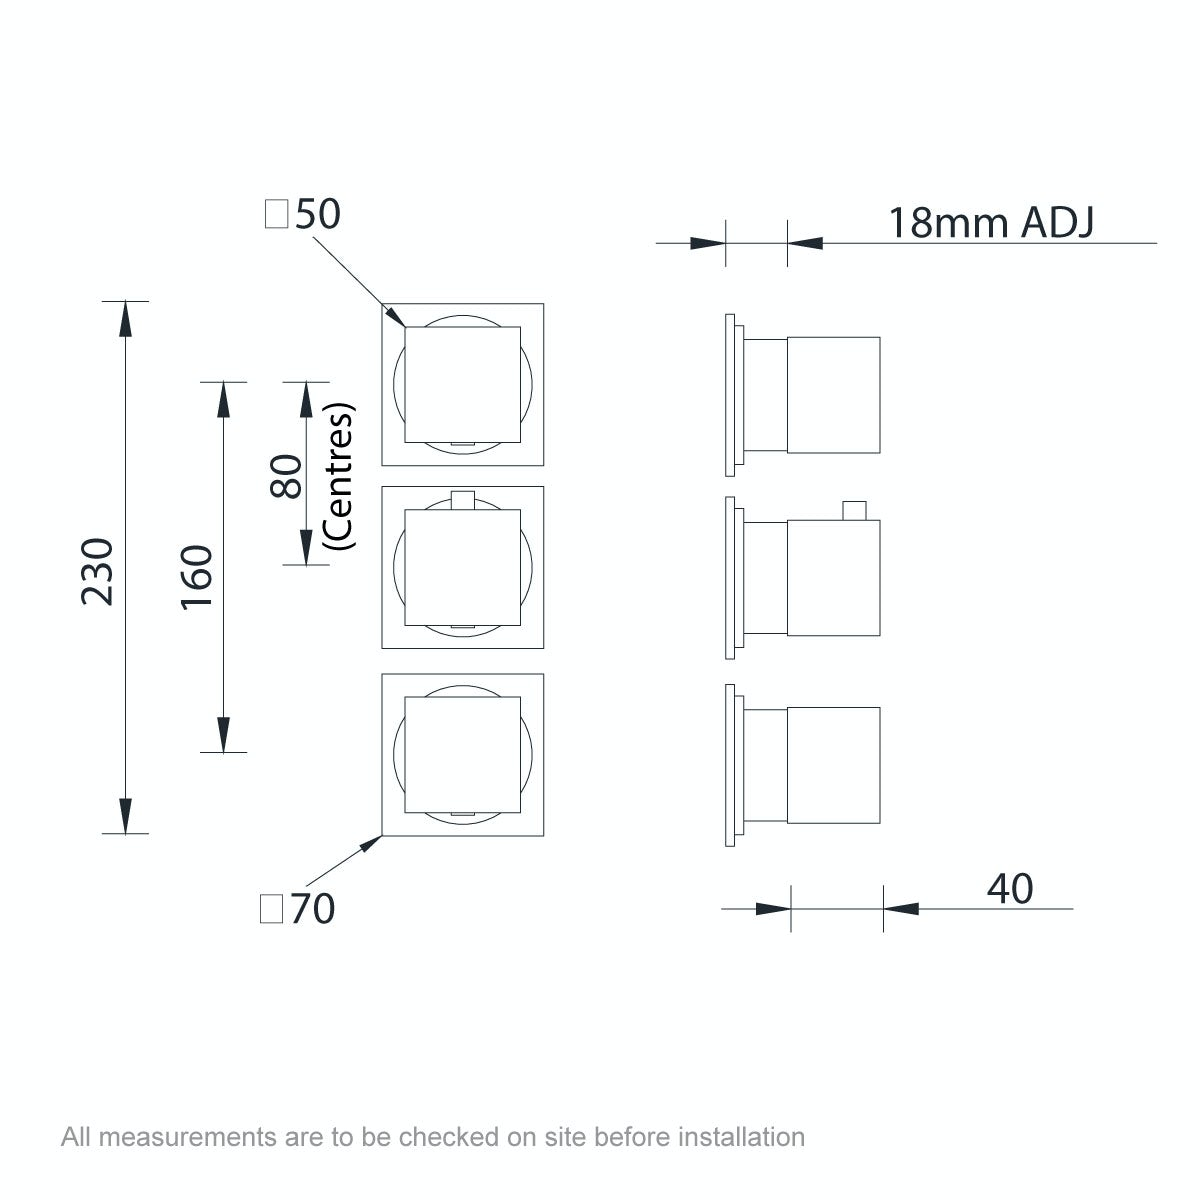 Dimensions for Mode Cooper square triple thermostatic shower valve with diverter